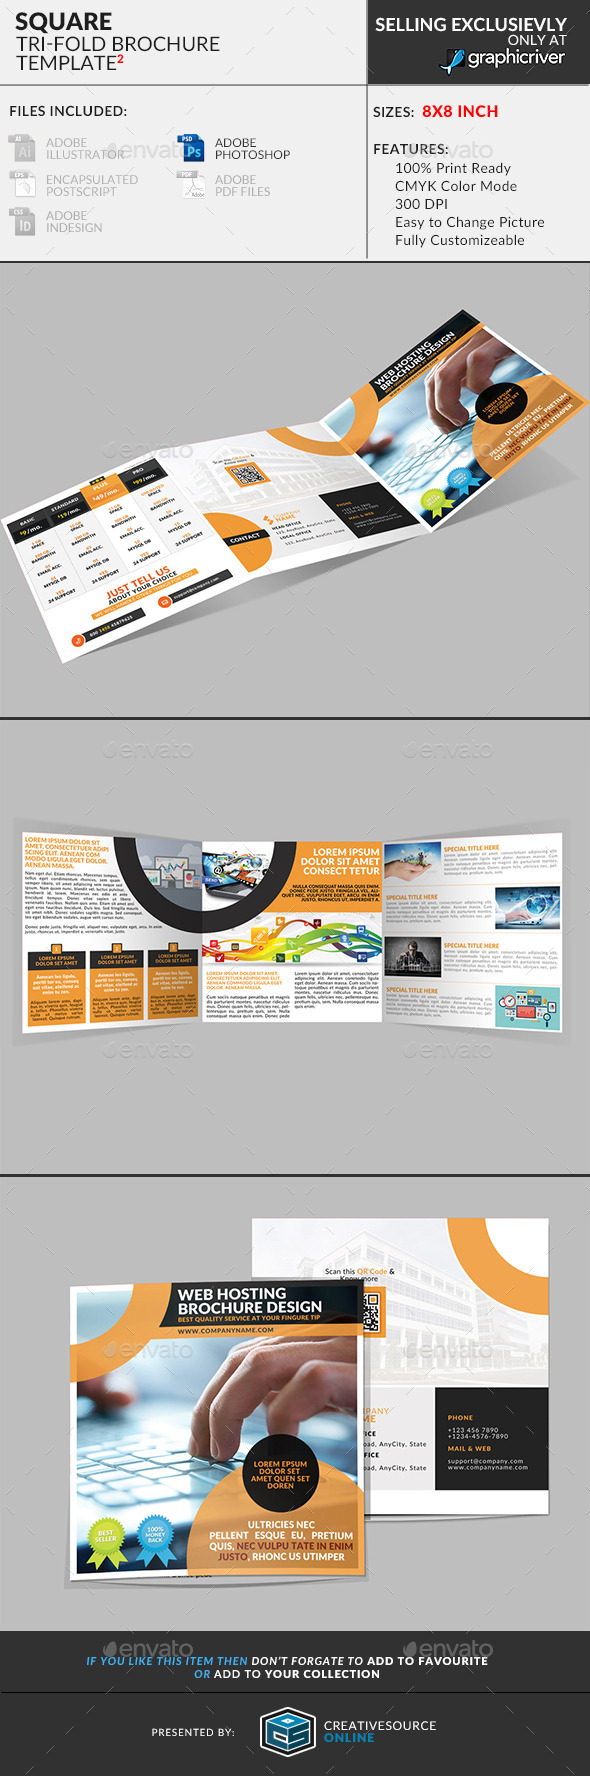 GraphicRiver Square Trifold Brochure Web Hosting Service 9450863